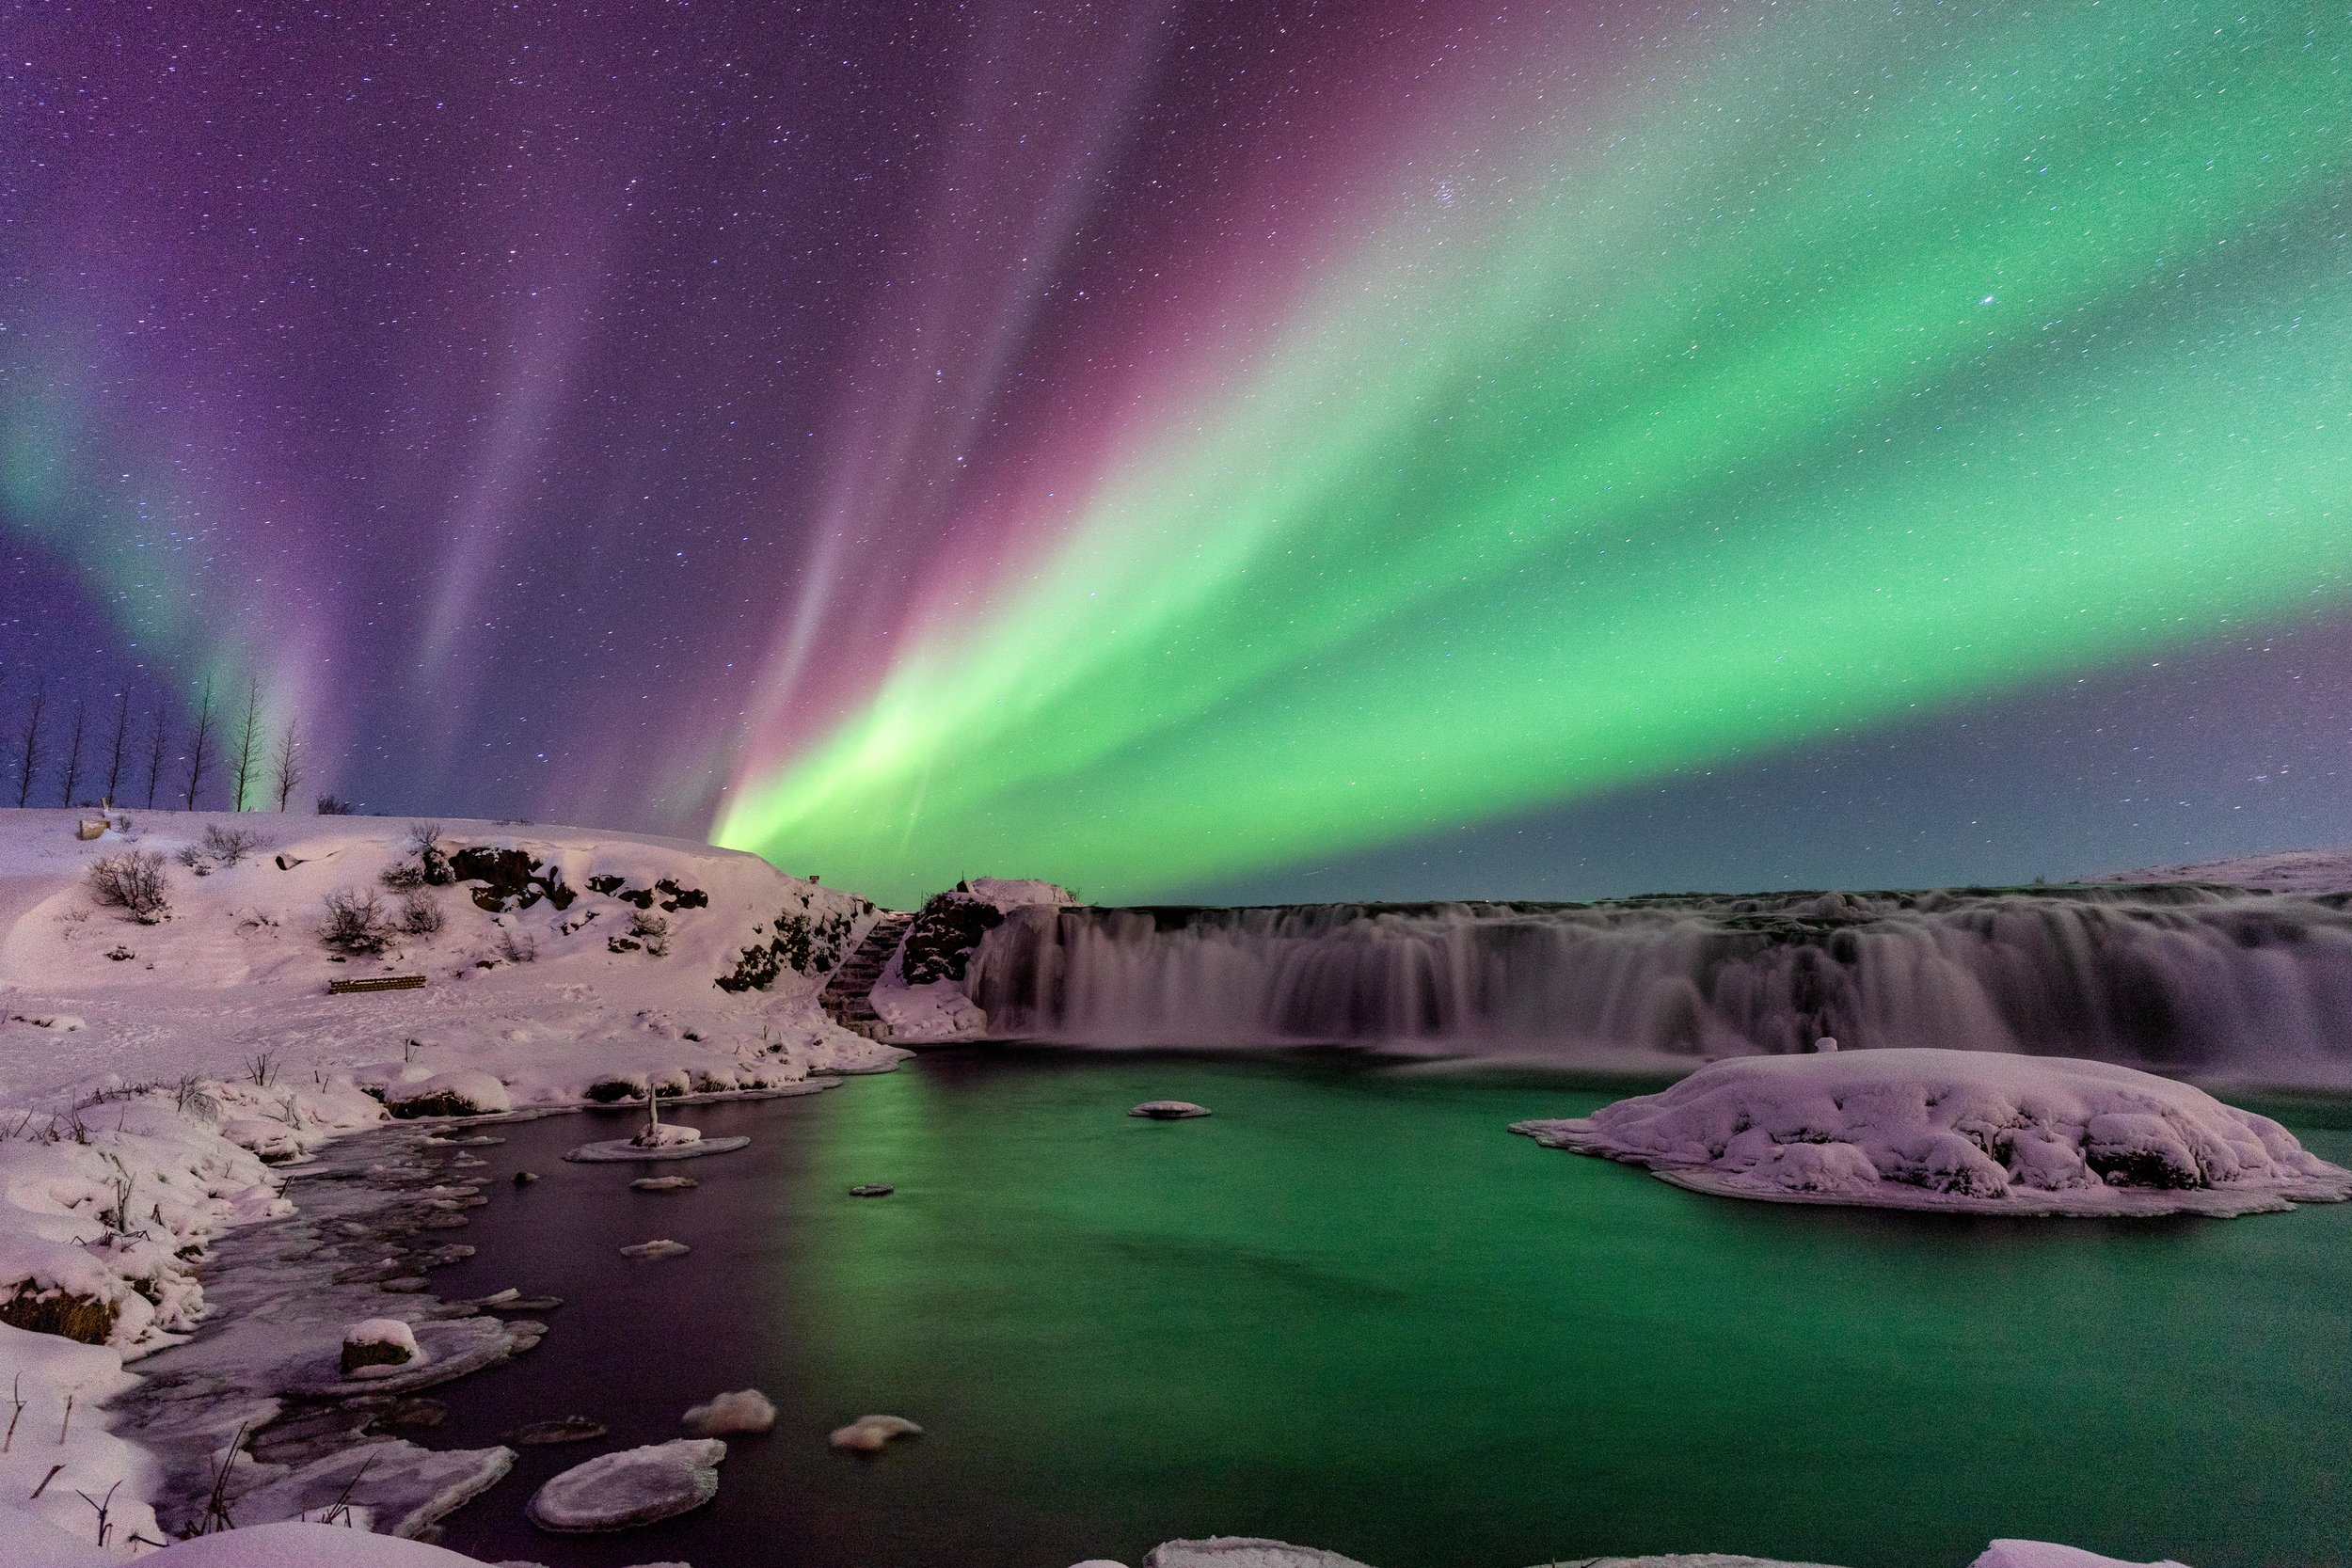 Iceland. snow. travel. adventure. photography. trip. epic landscape. snow. cold. freezing. sunrise. nothern lights..jpg